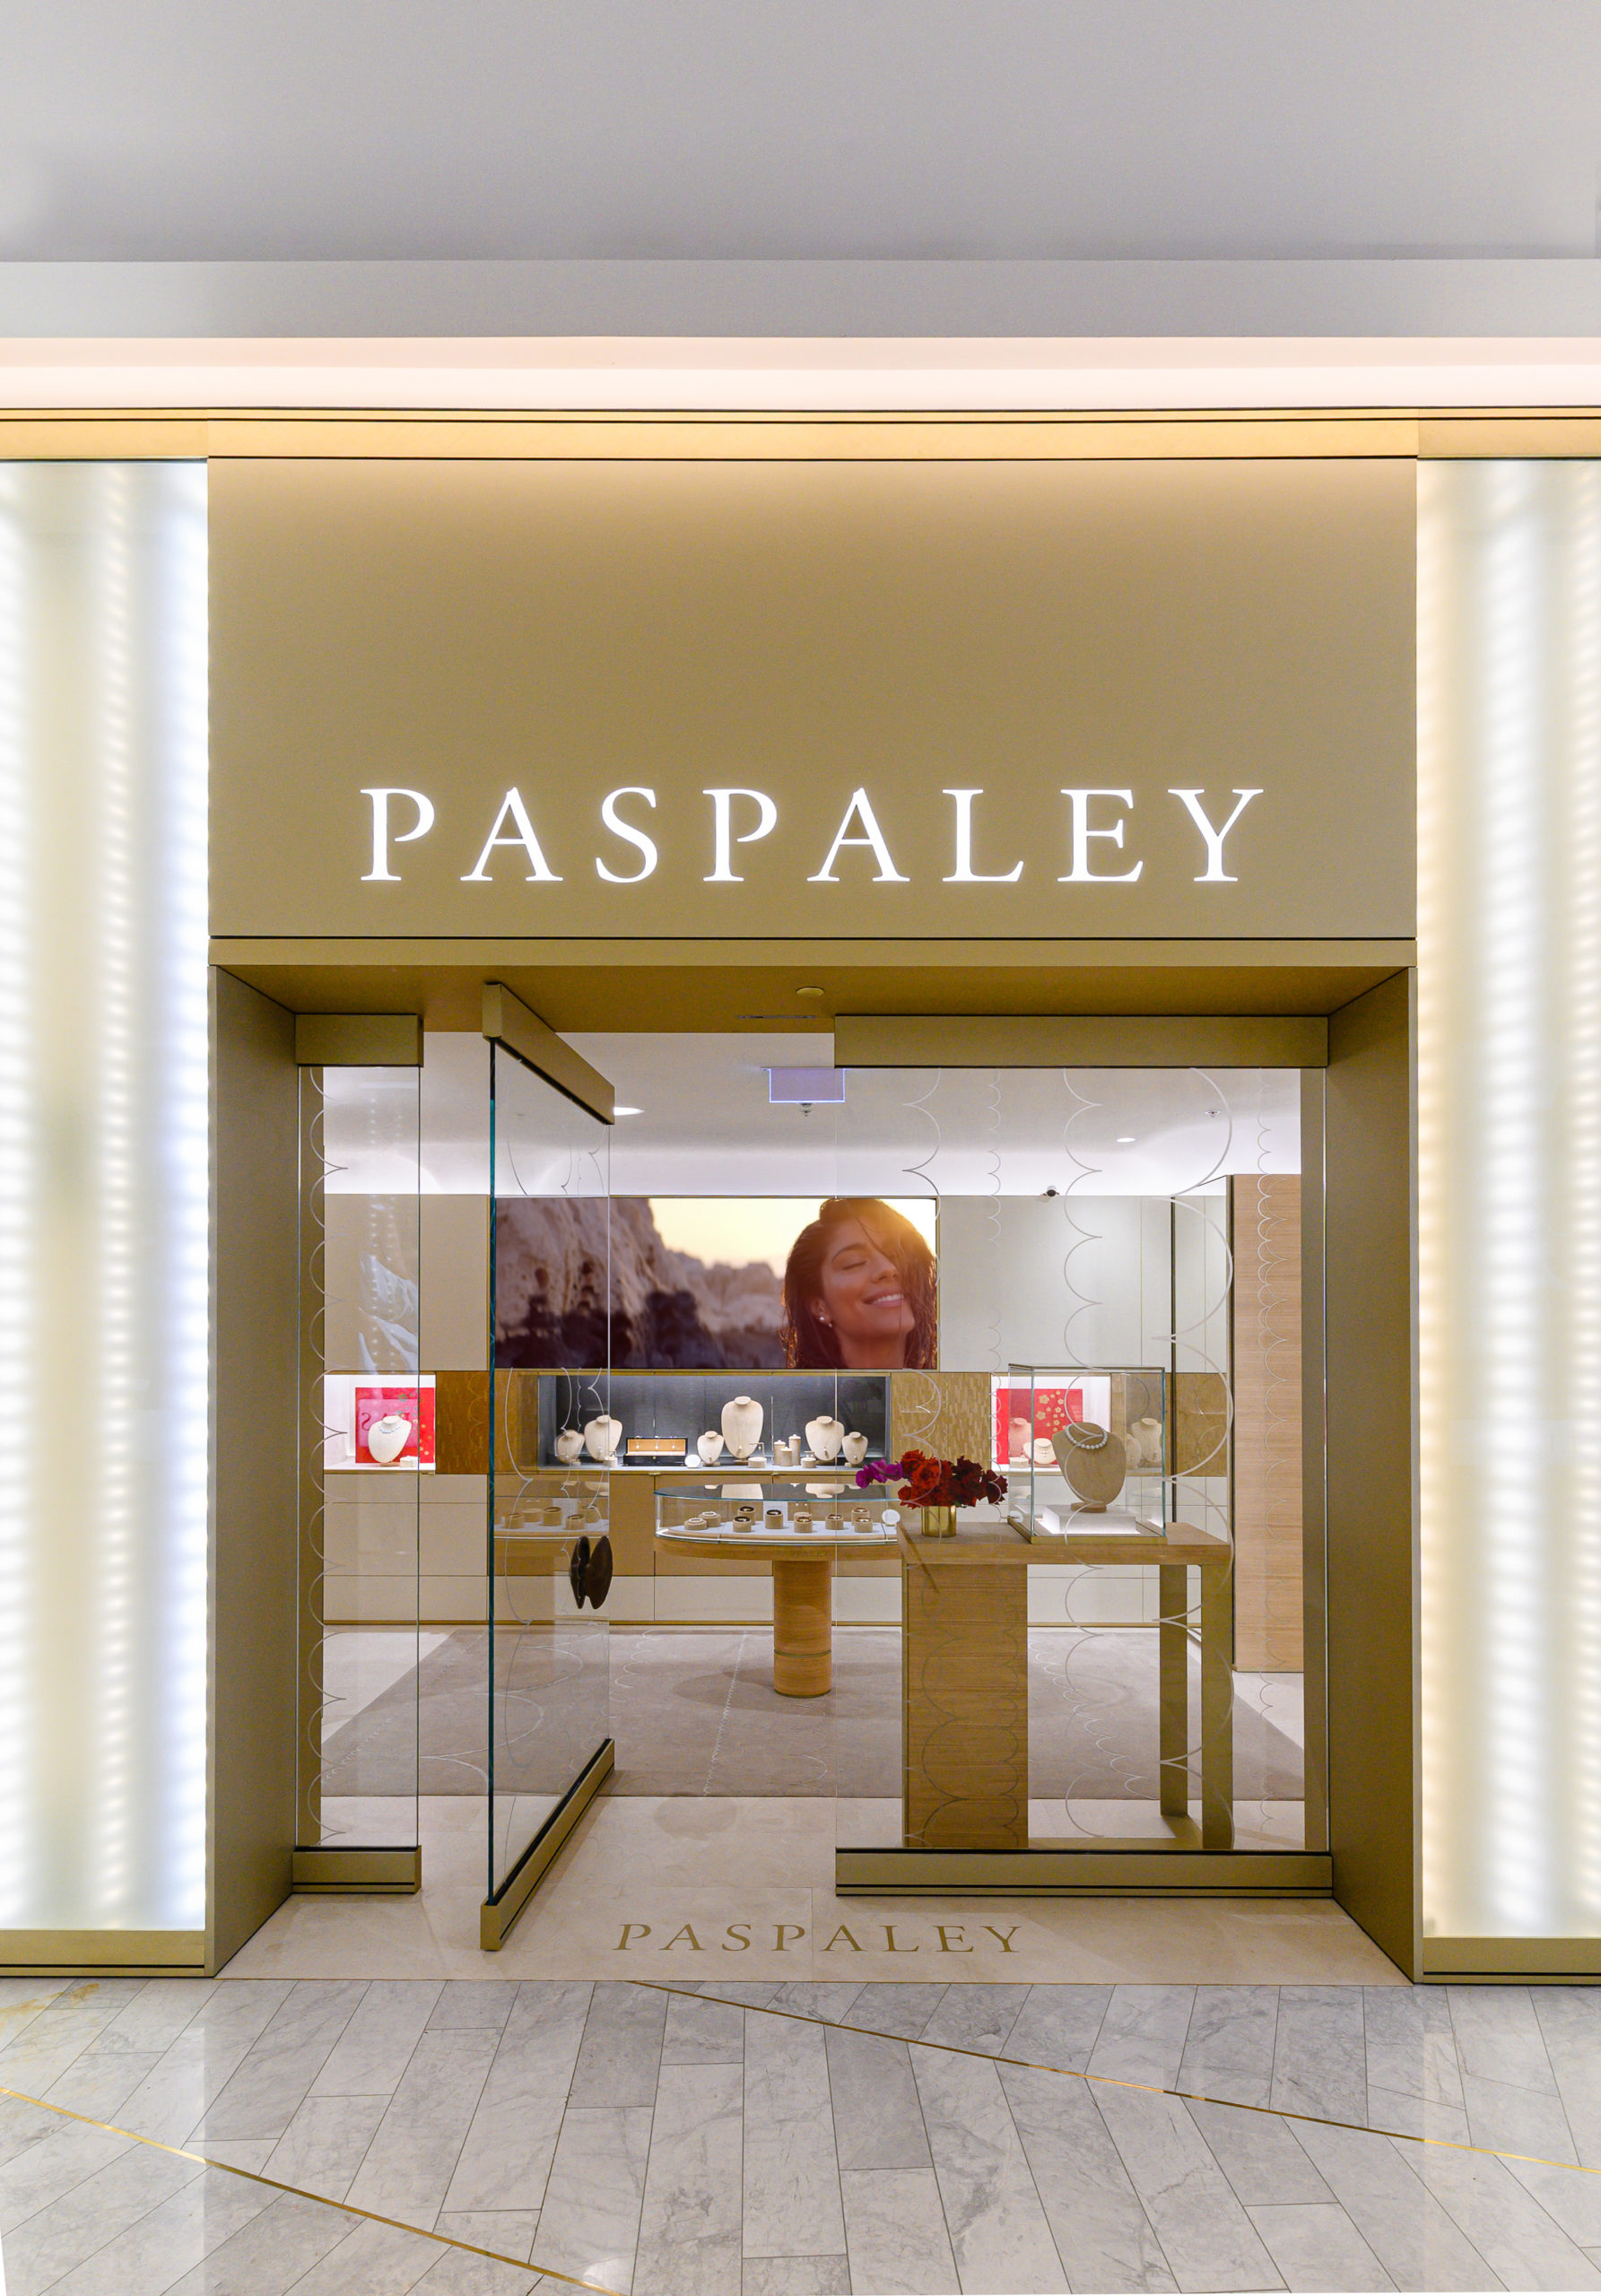 Paspaley Boutique Crown Sydney 28.01.2021 ELT 8682 Edit